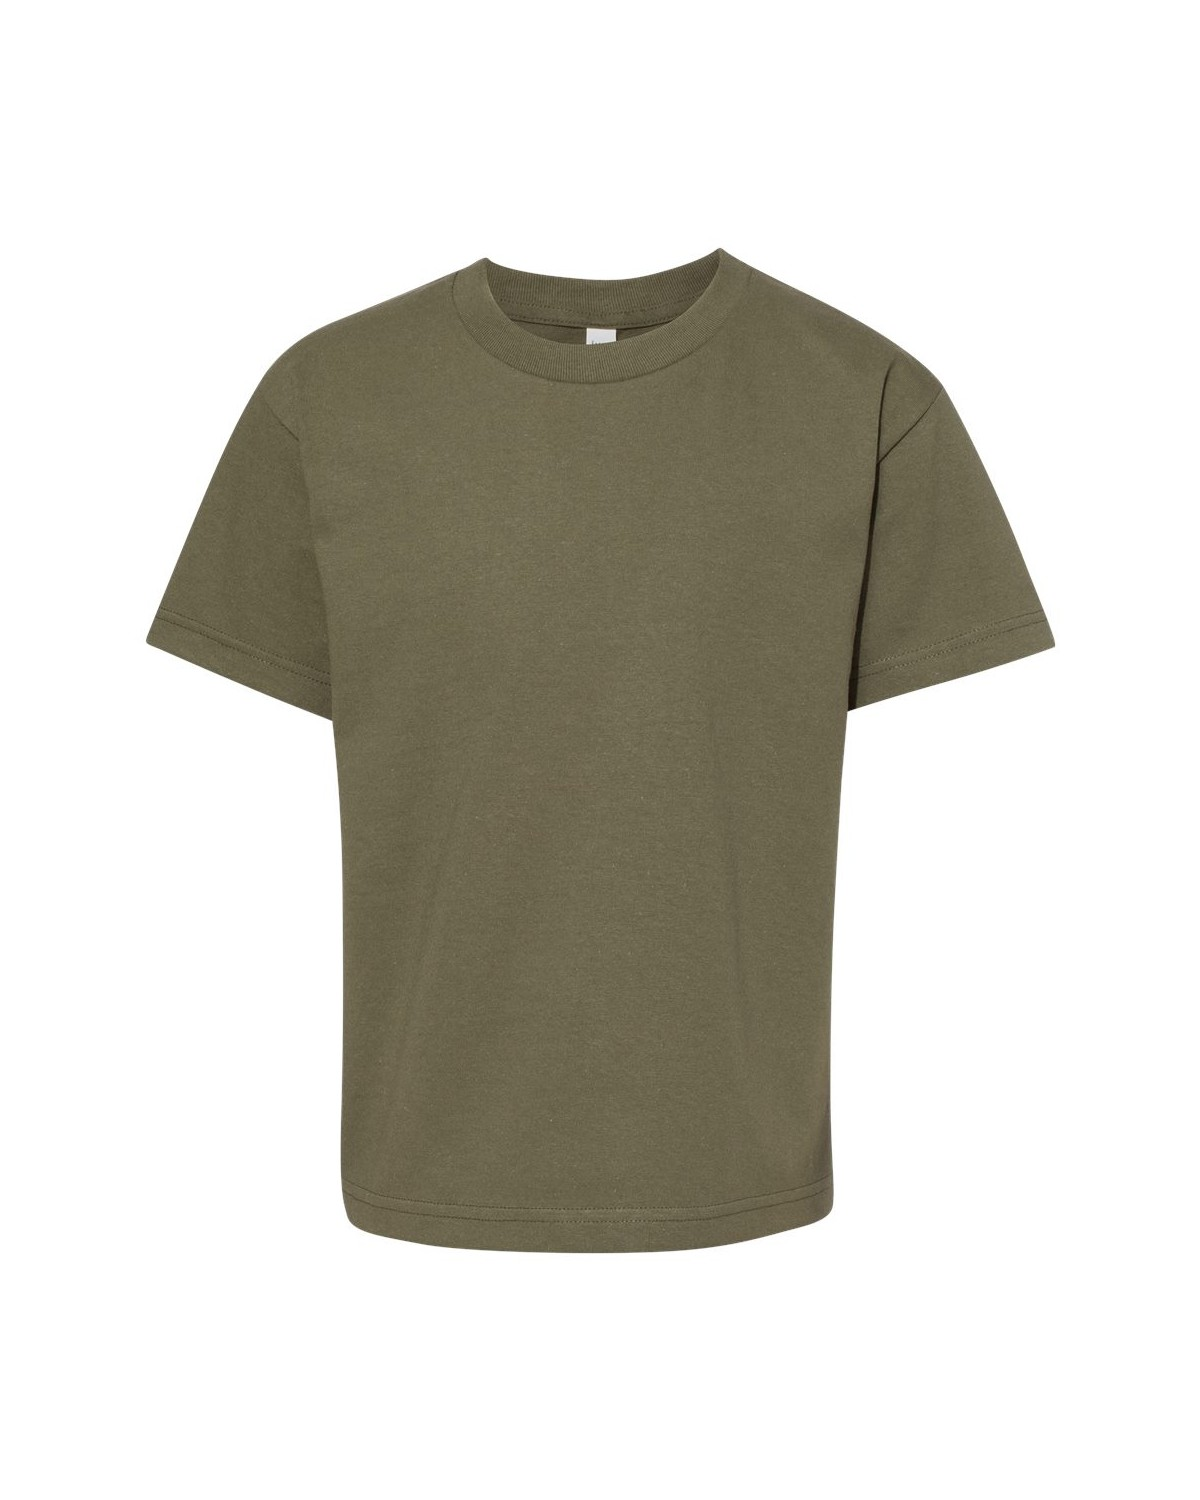 3381 Alstyle MILITARY GREEN